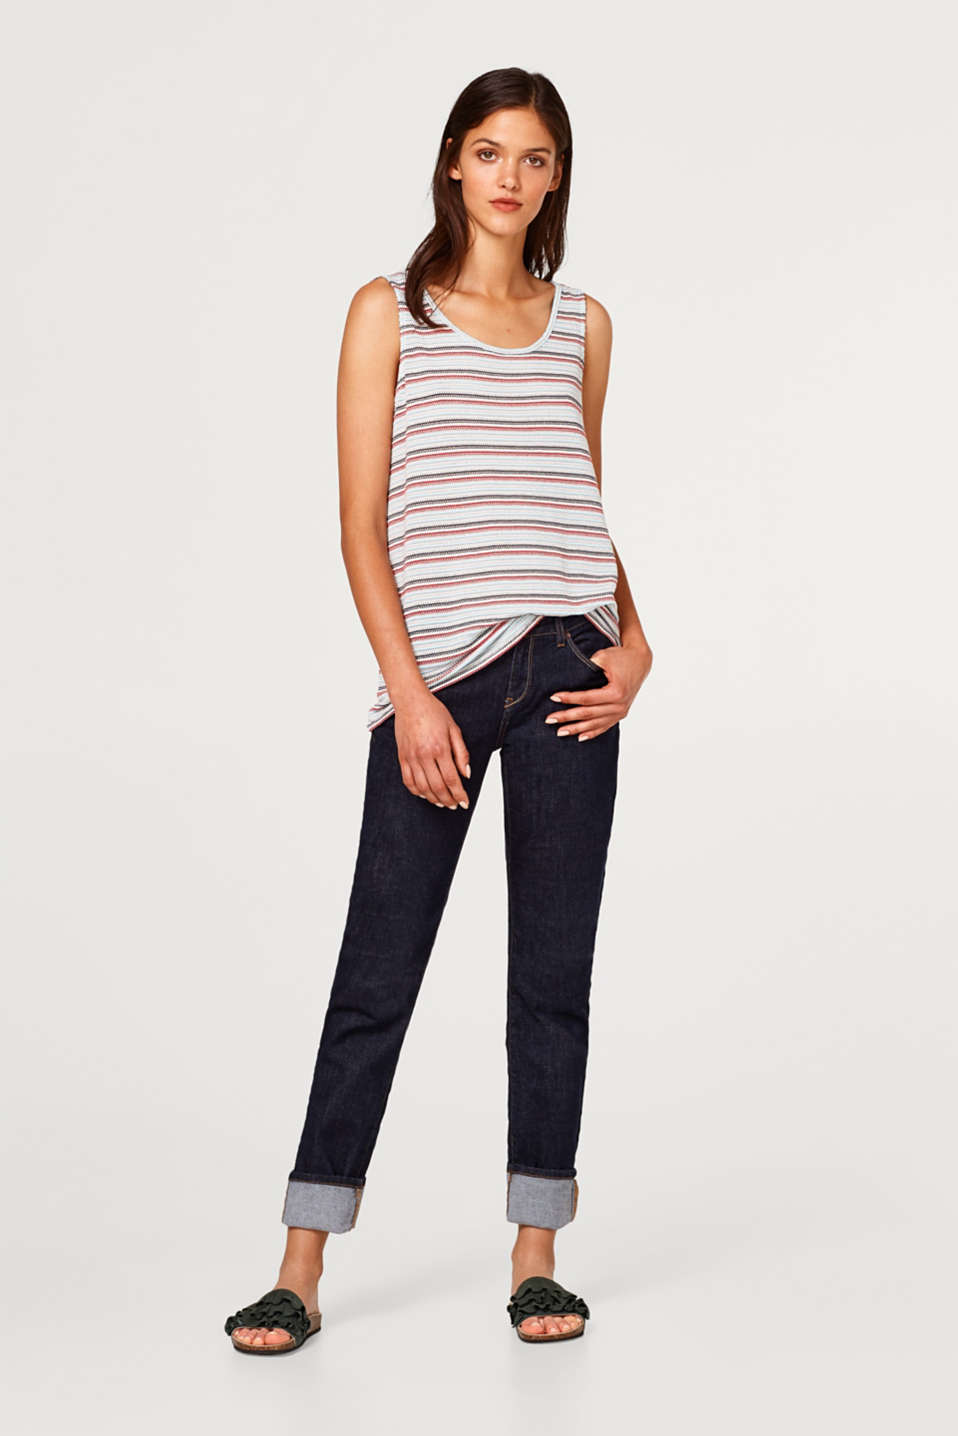 Soft jersey top with jacquard stripes